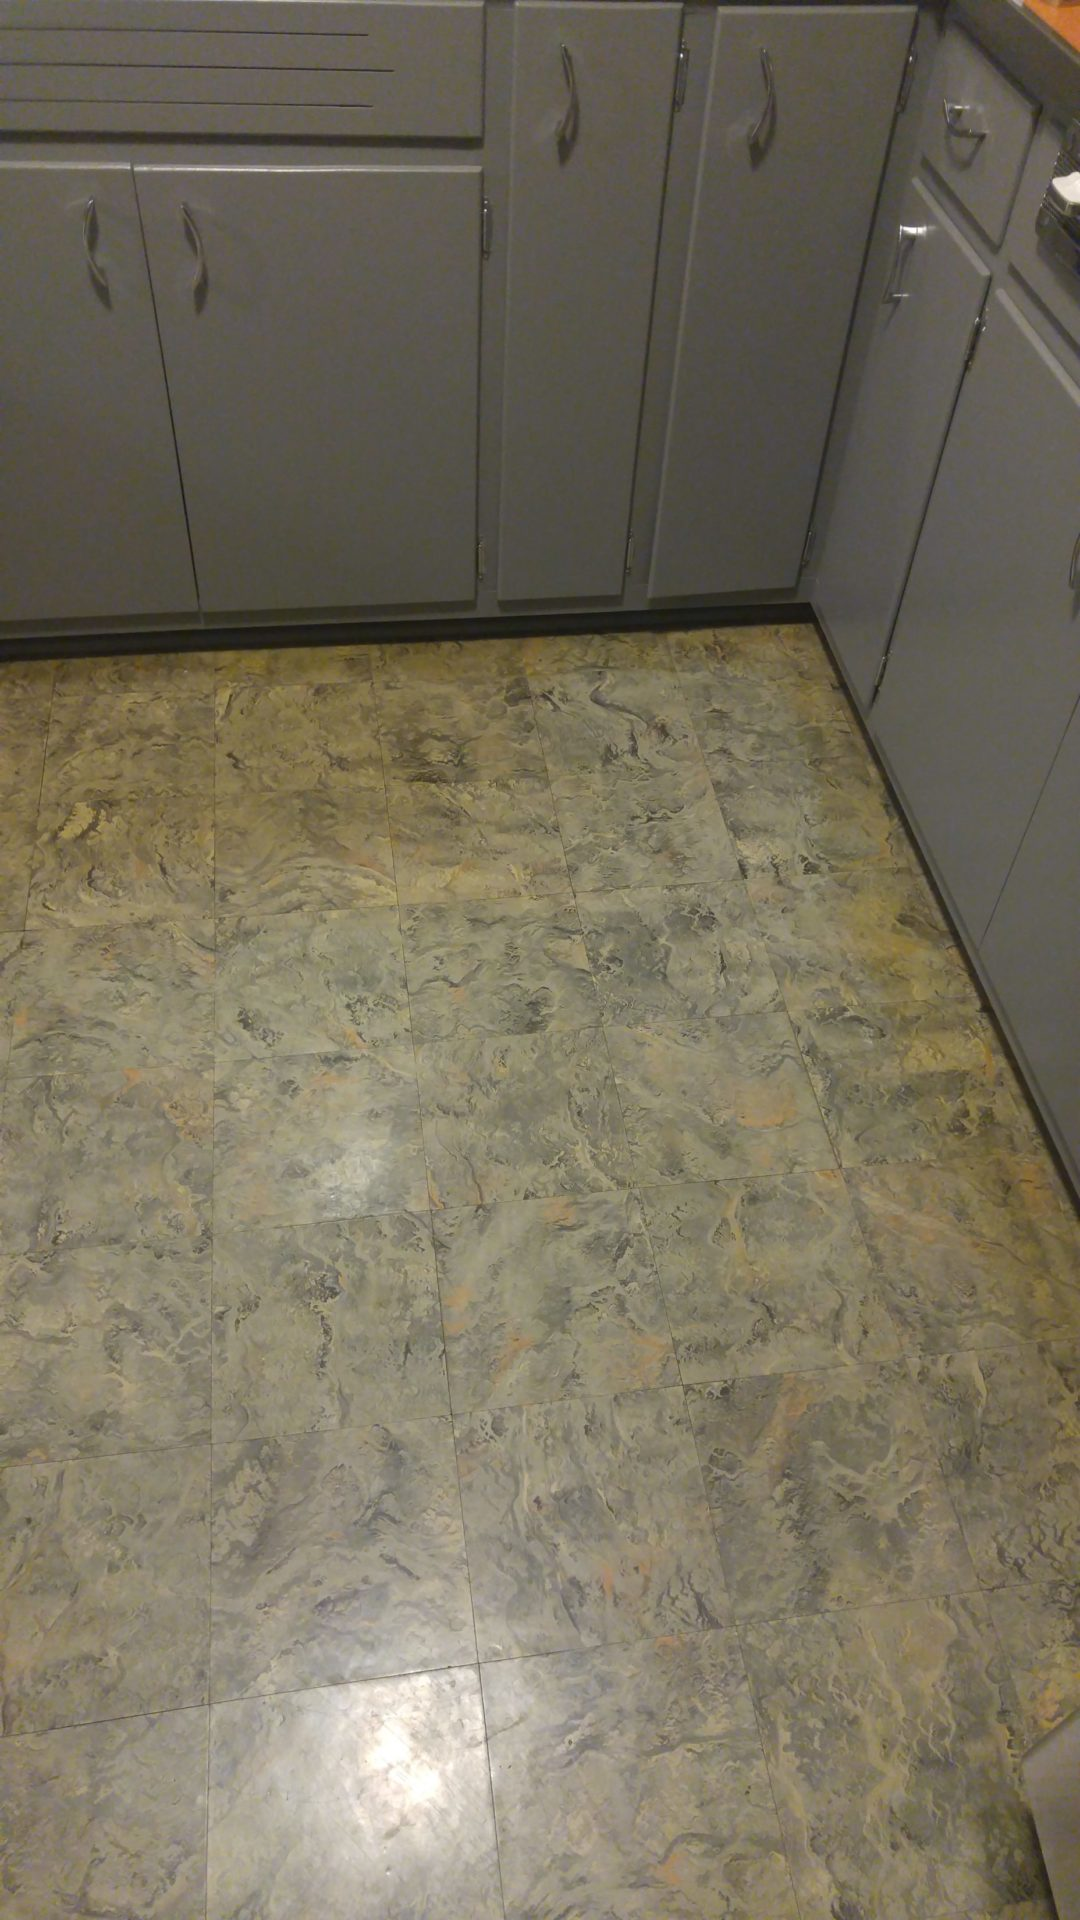 The ugliest of ugly floors ugly floor contest entry photo